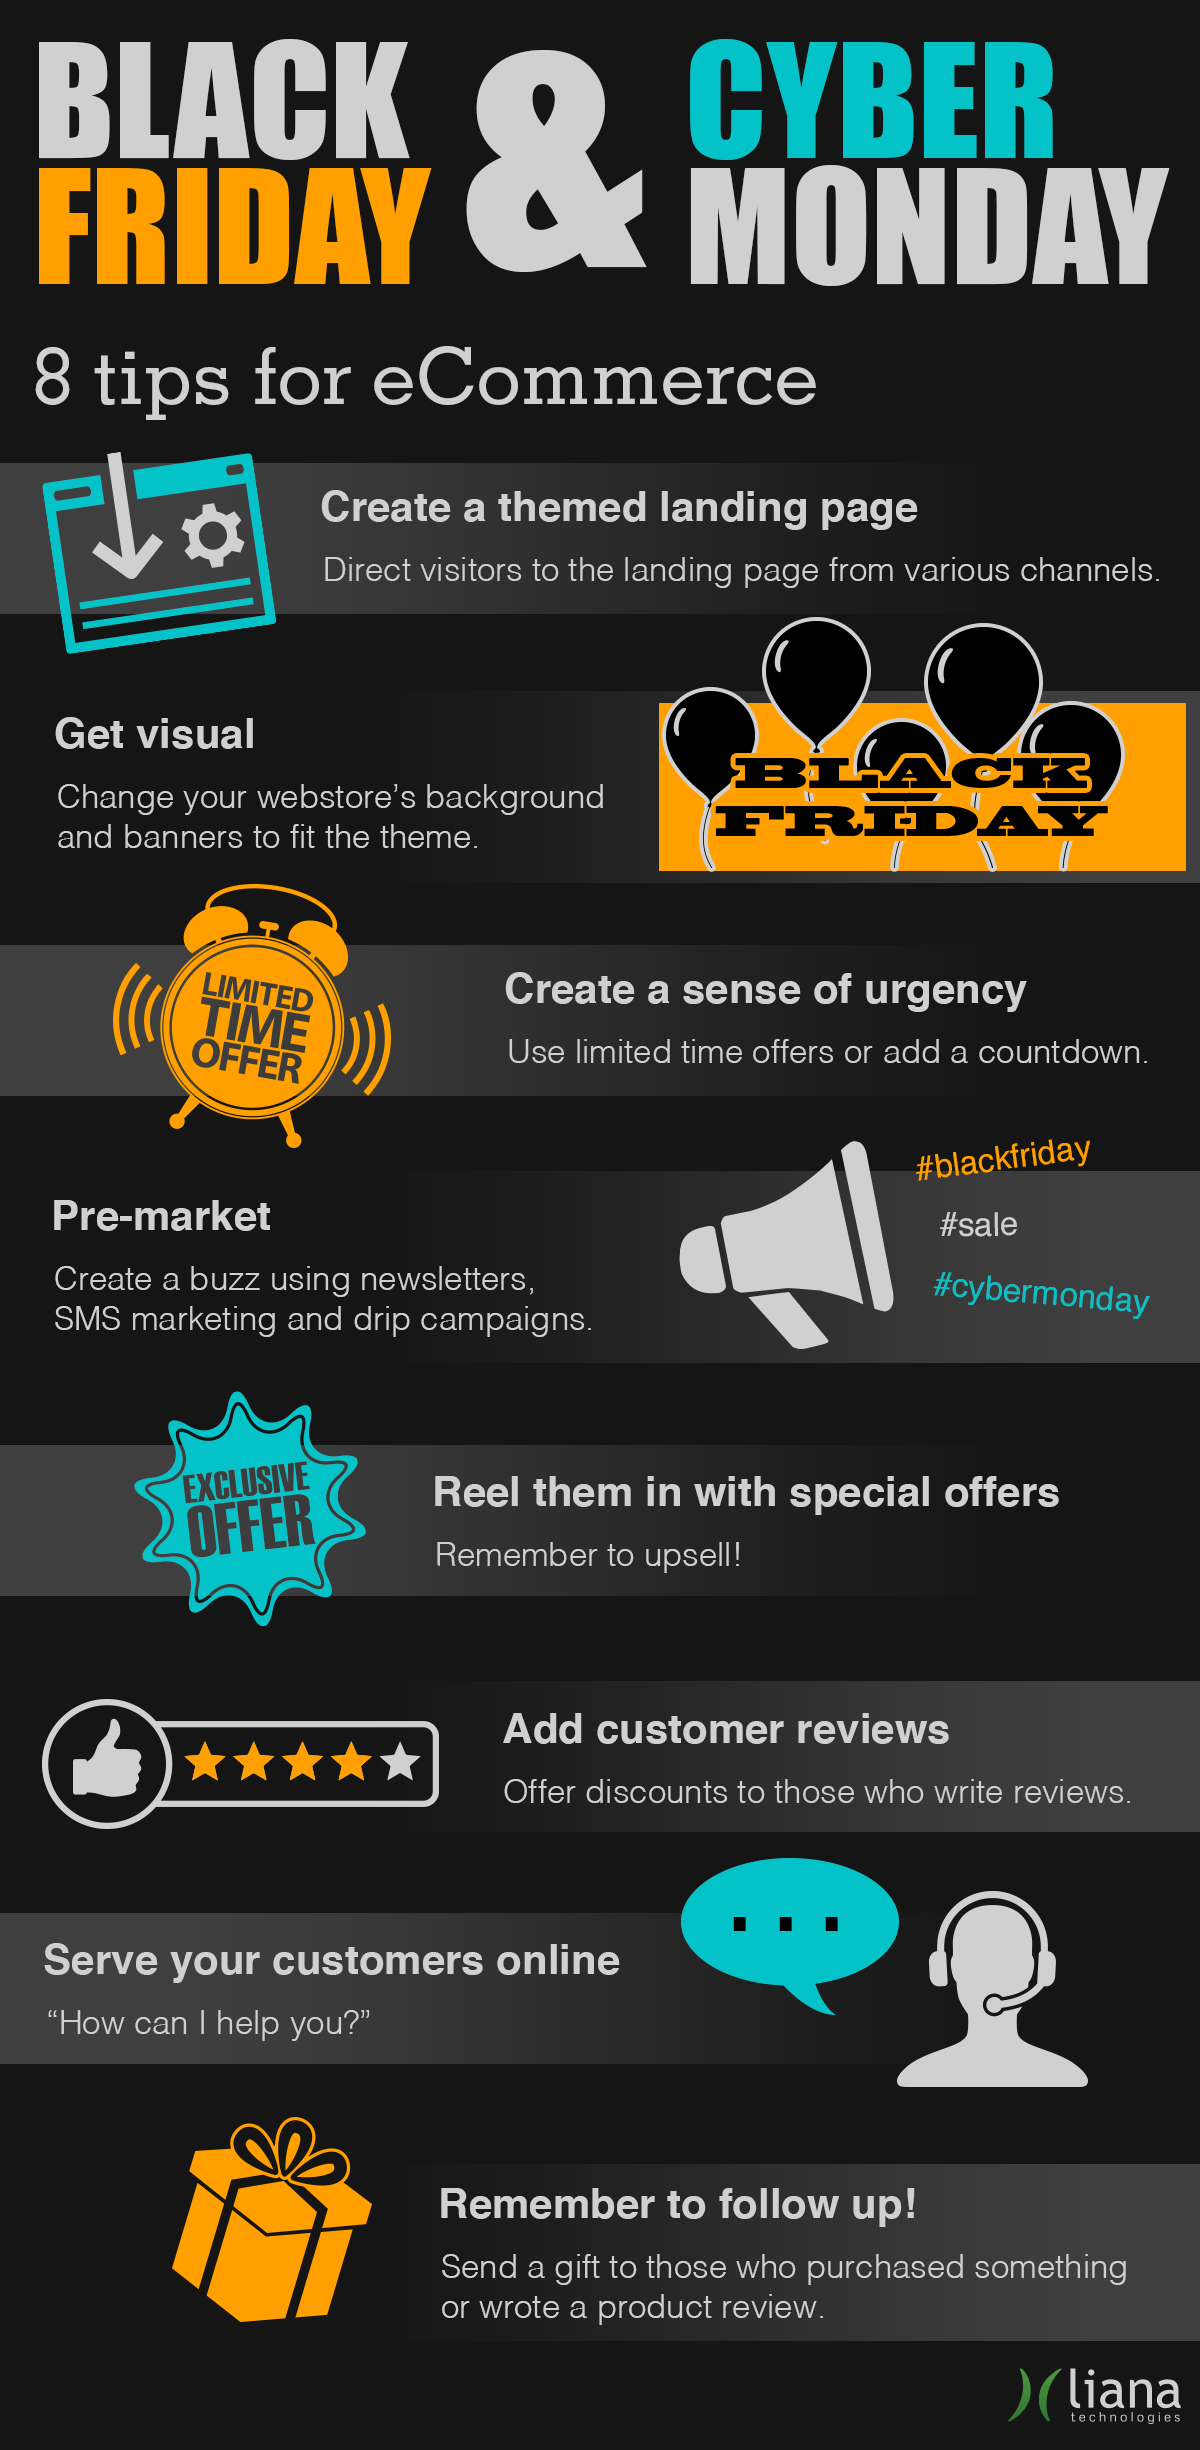 8 tips for eCommerce: how to take full advantage of Black Friday and Cyber Monday?